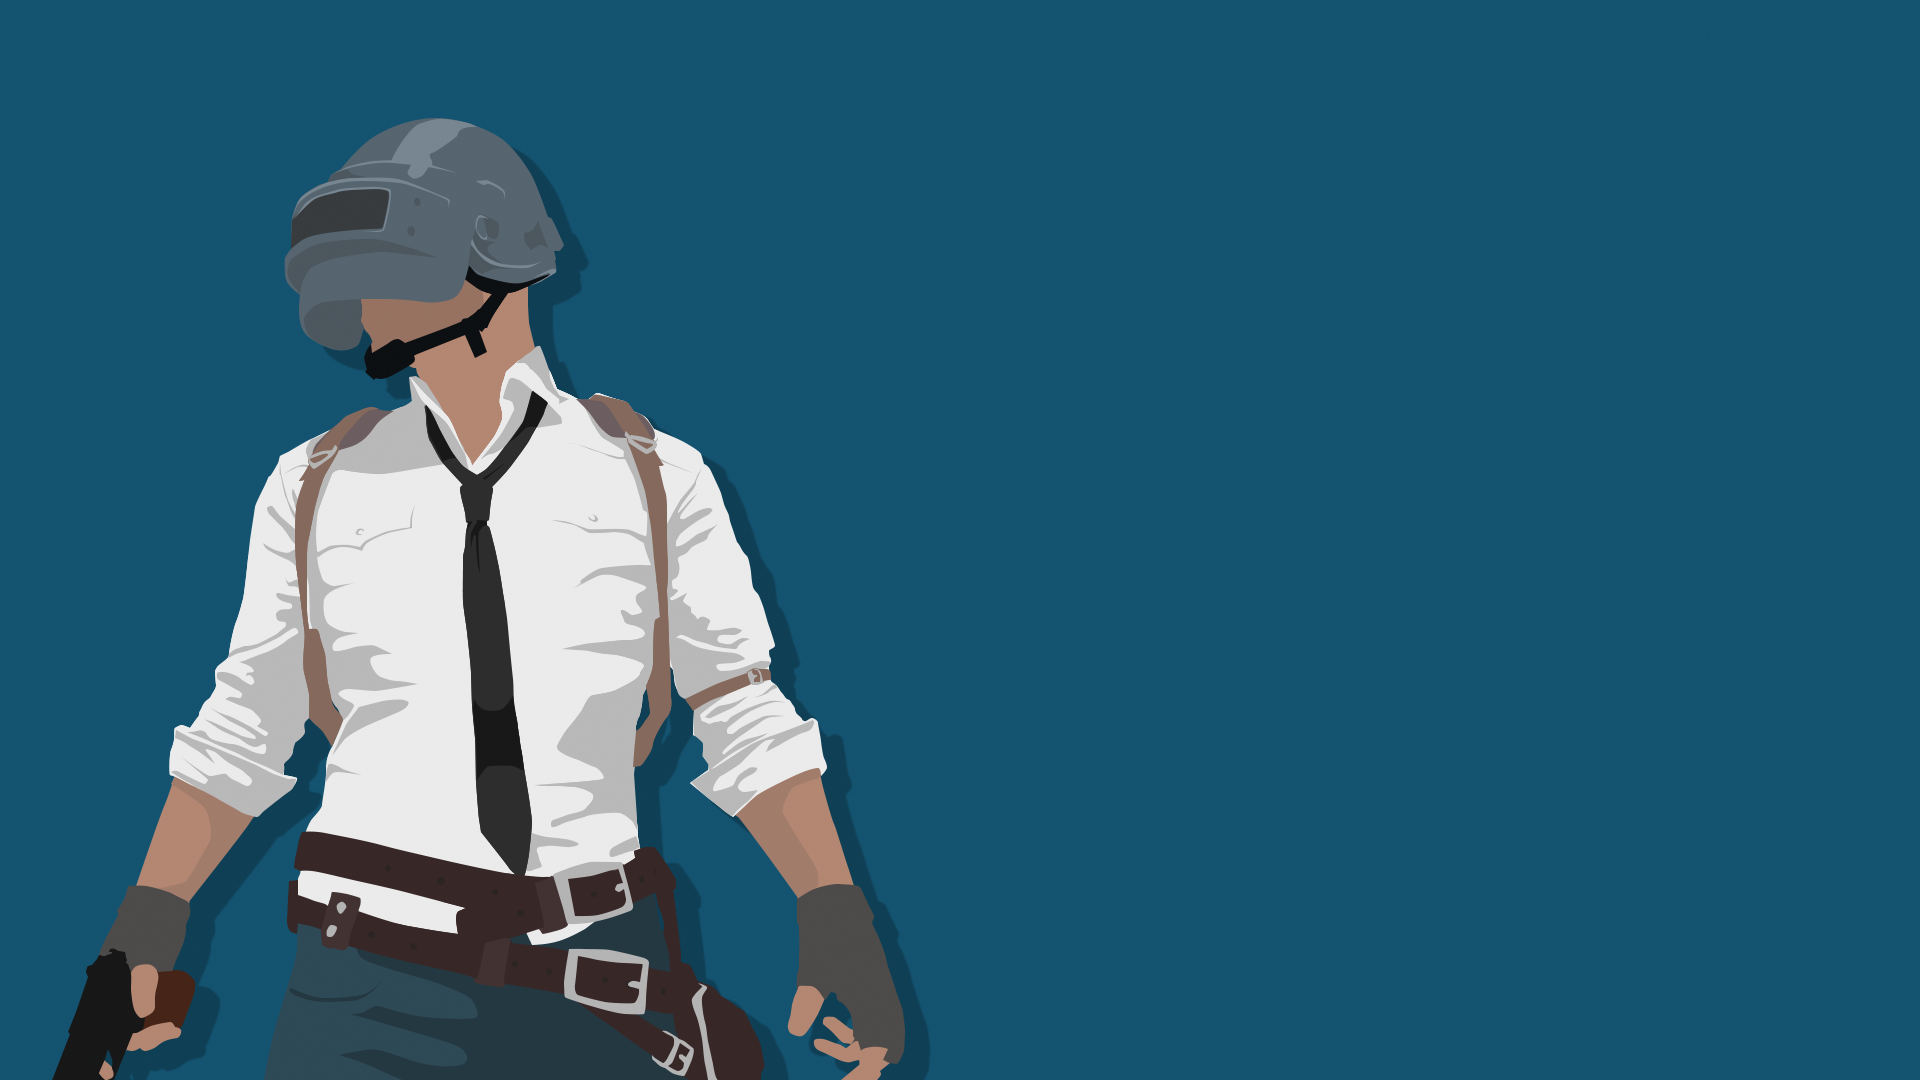 Pubg Helmet Fan Art 4k Wallpapers: Playerunknown's Battlegrounds Guy By Travp333 On DeviantArt